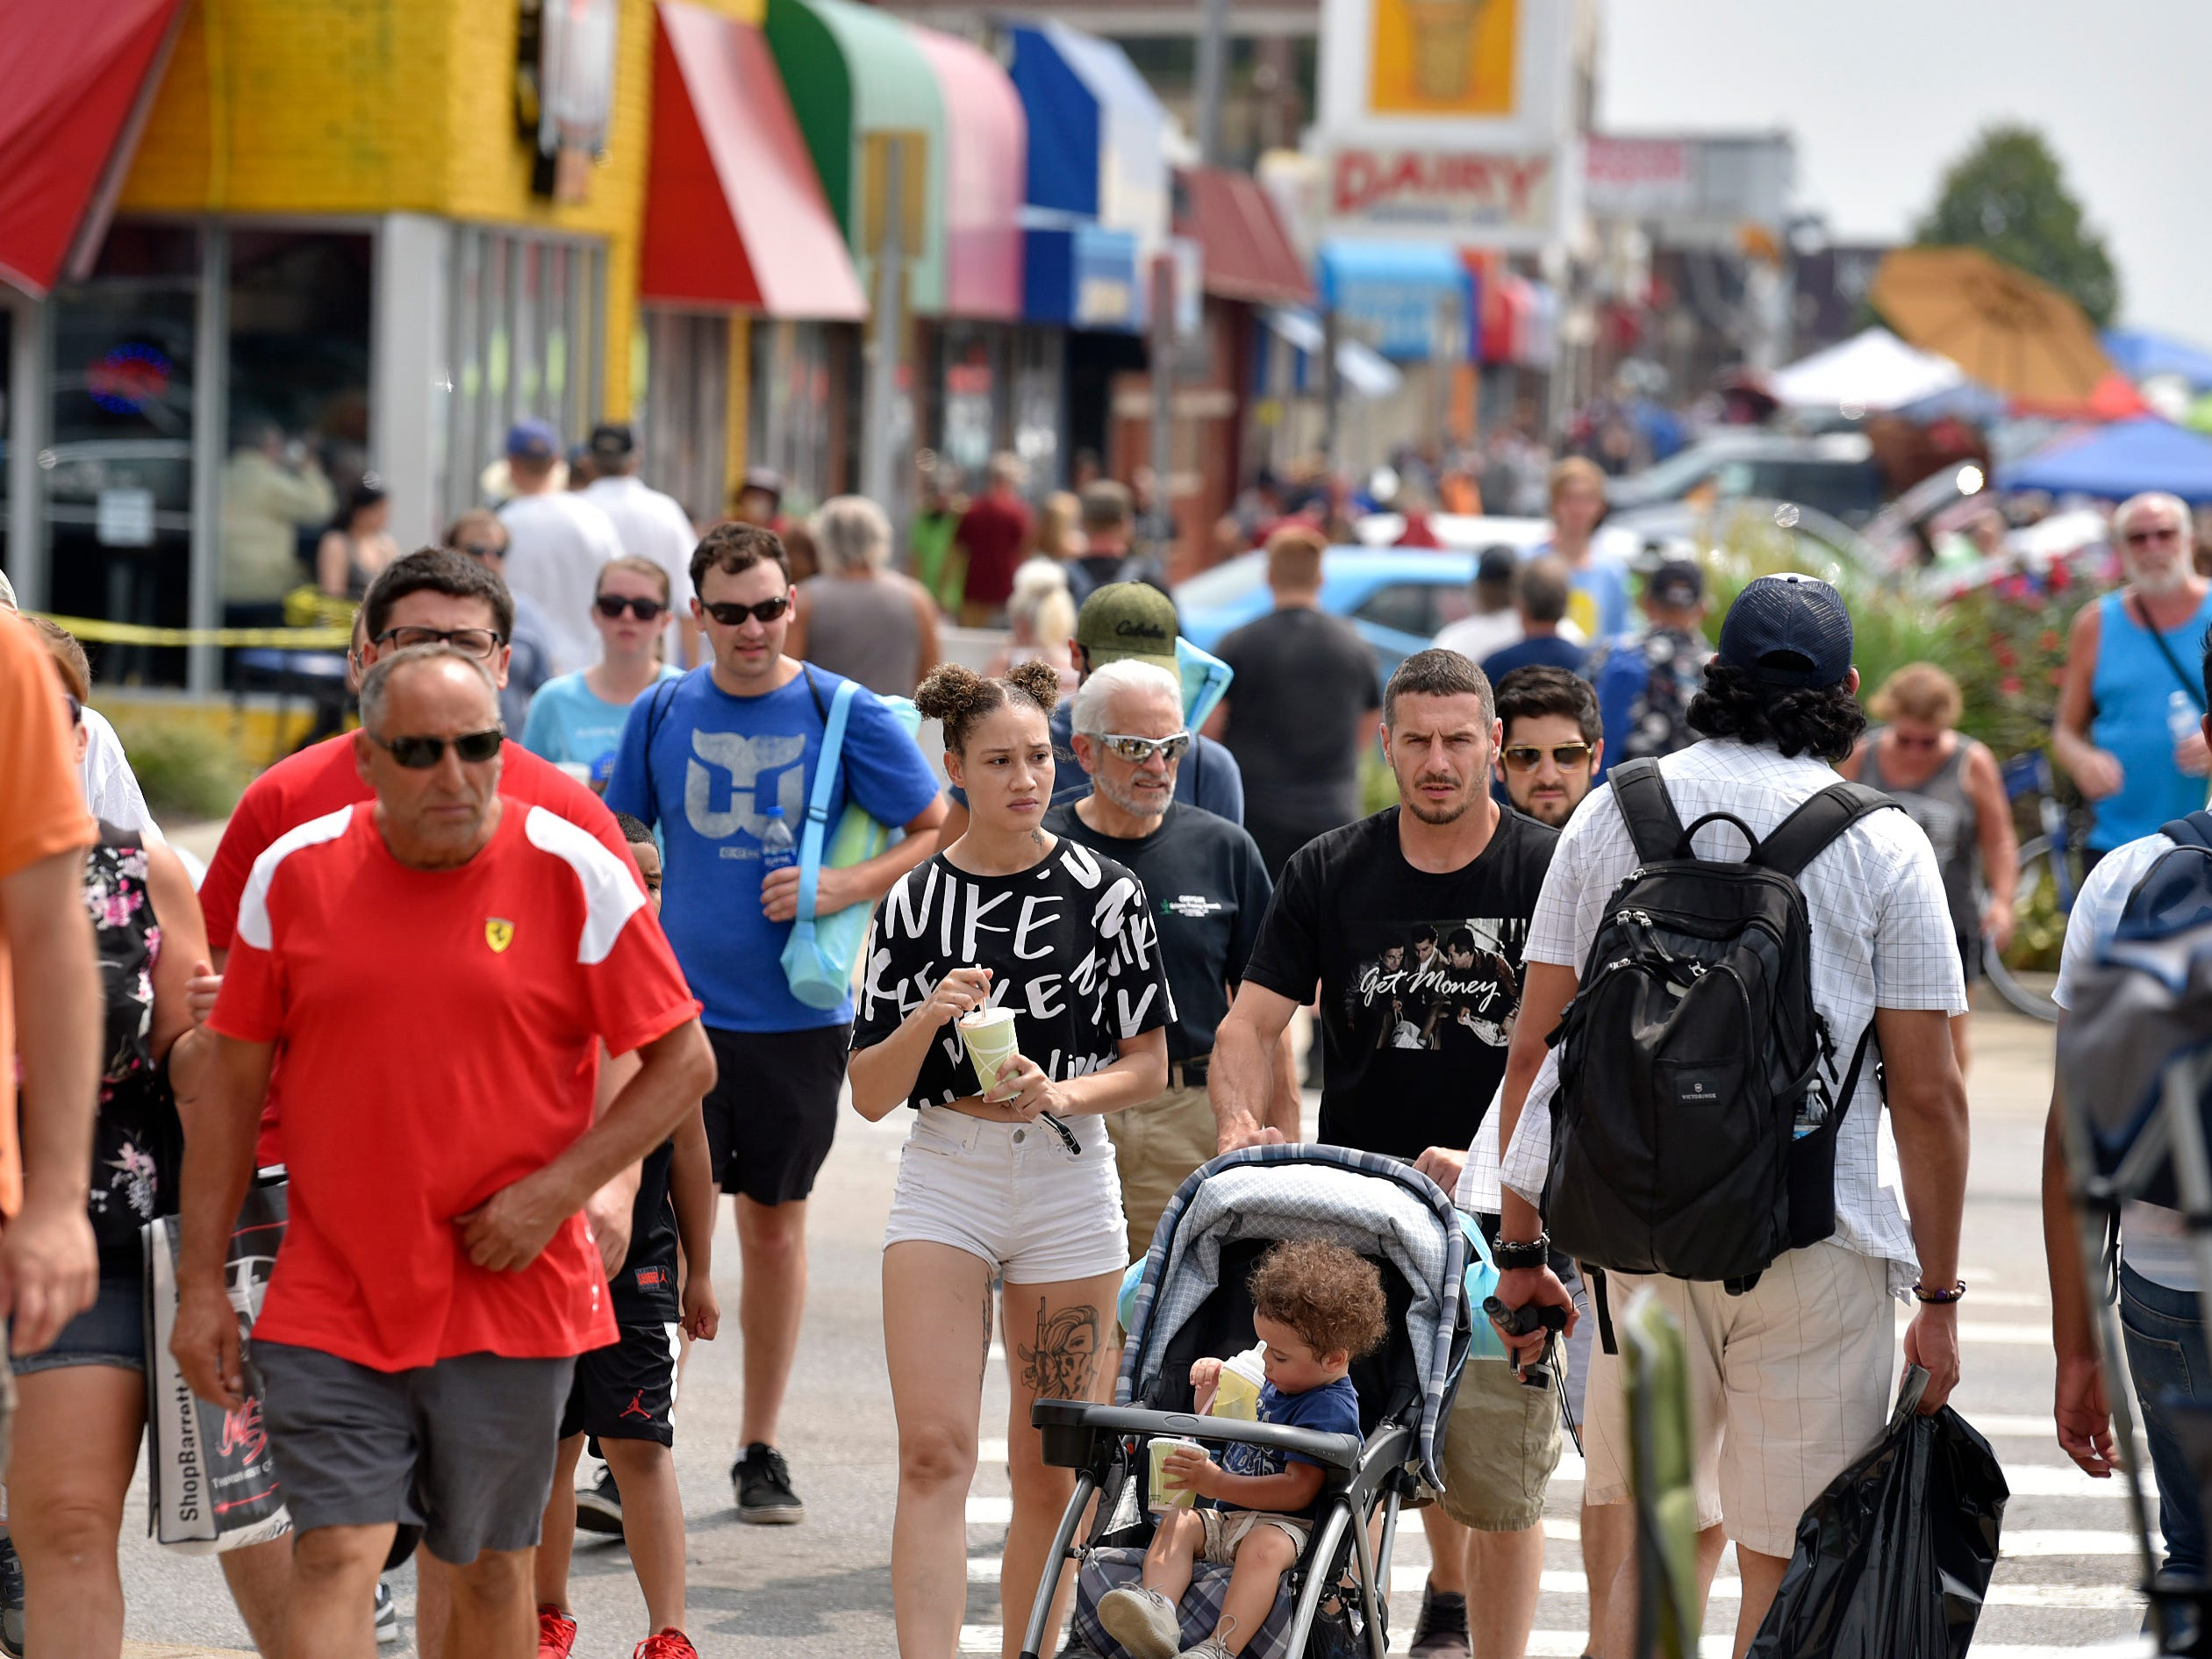 Throngs of people attend the Woodward Dream Cruise in Royal Oak, Saturday, August 18, 2018.